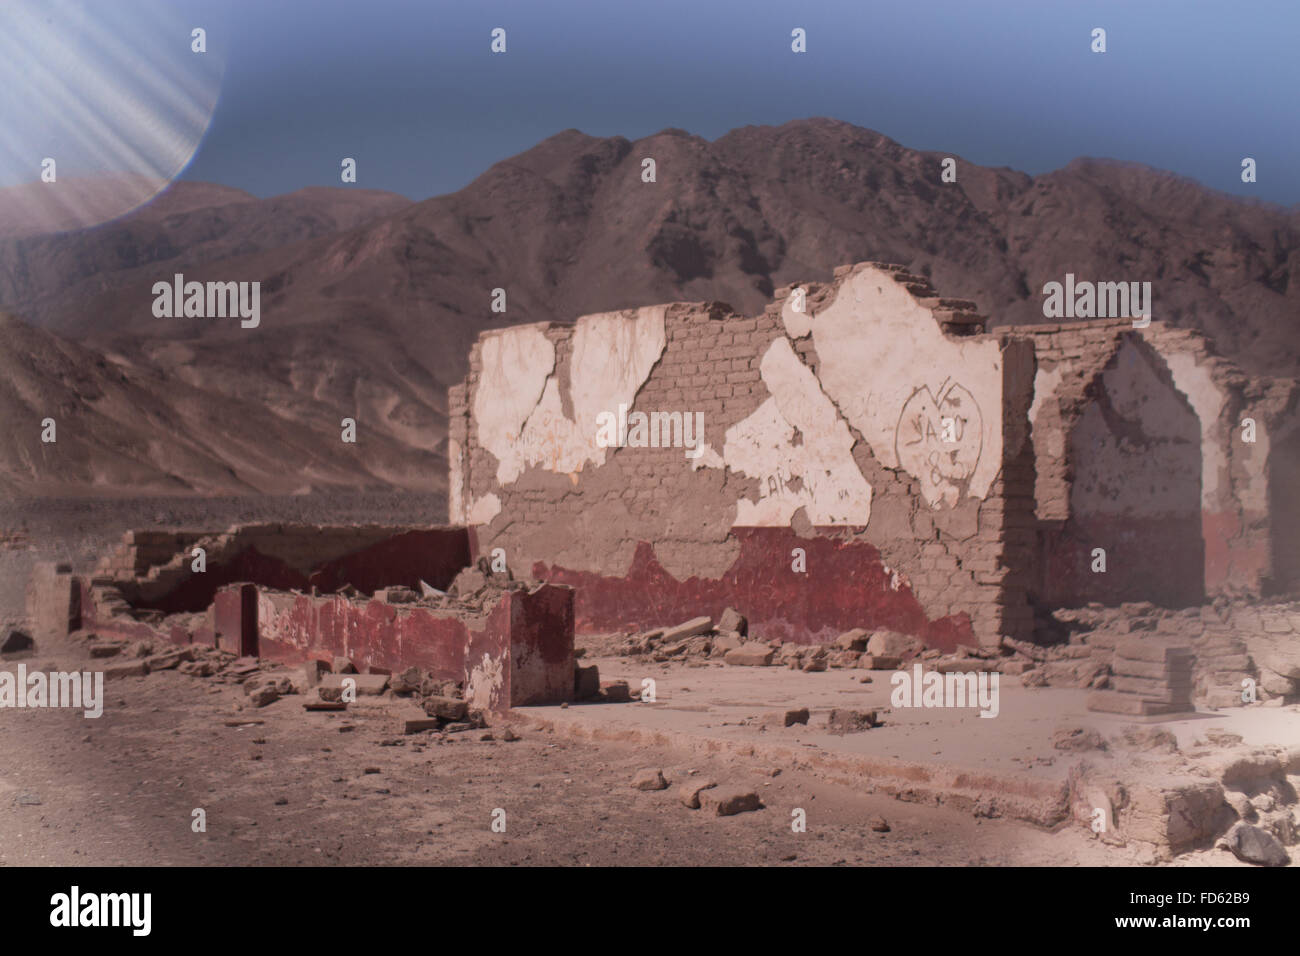 Demolished Building With Mountain In Background - Stock Image